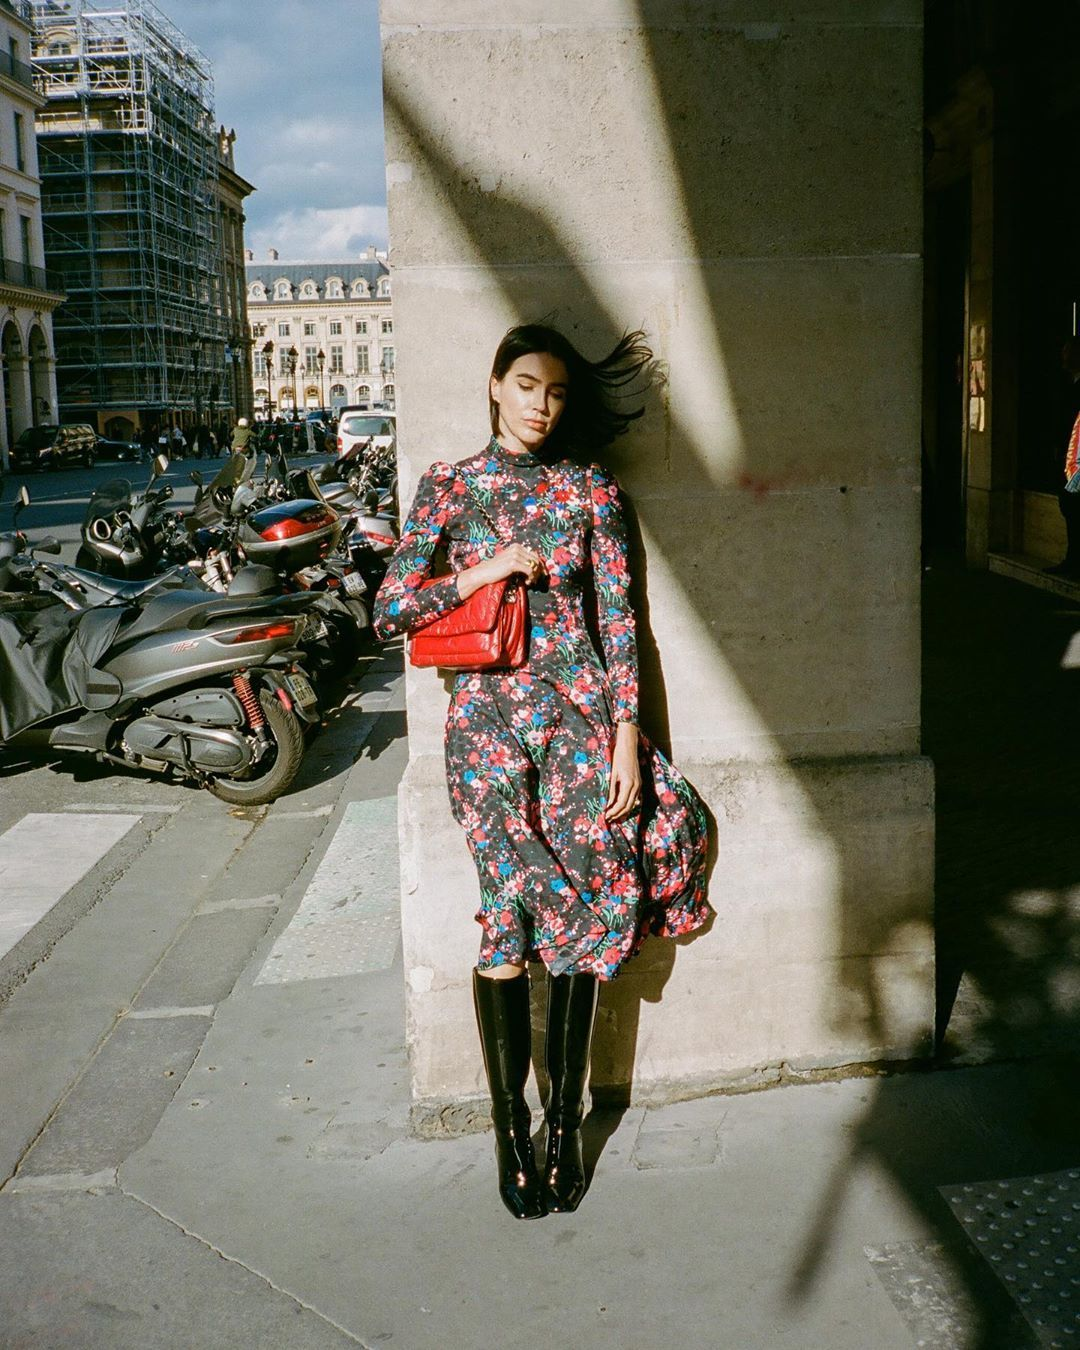 marc-jacobs-the-pillow-bag-cranberry-brittany-xavier-paris-street-style